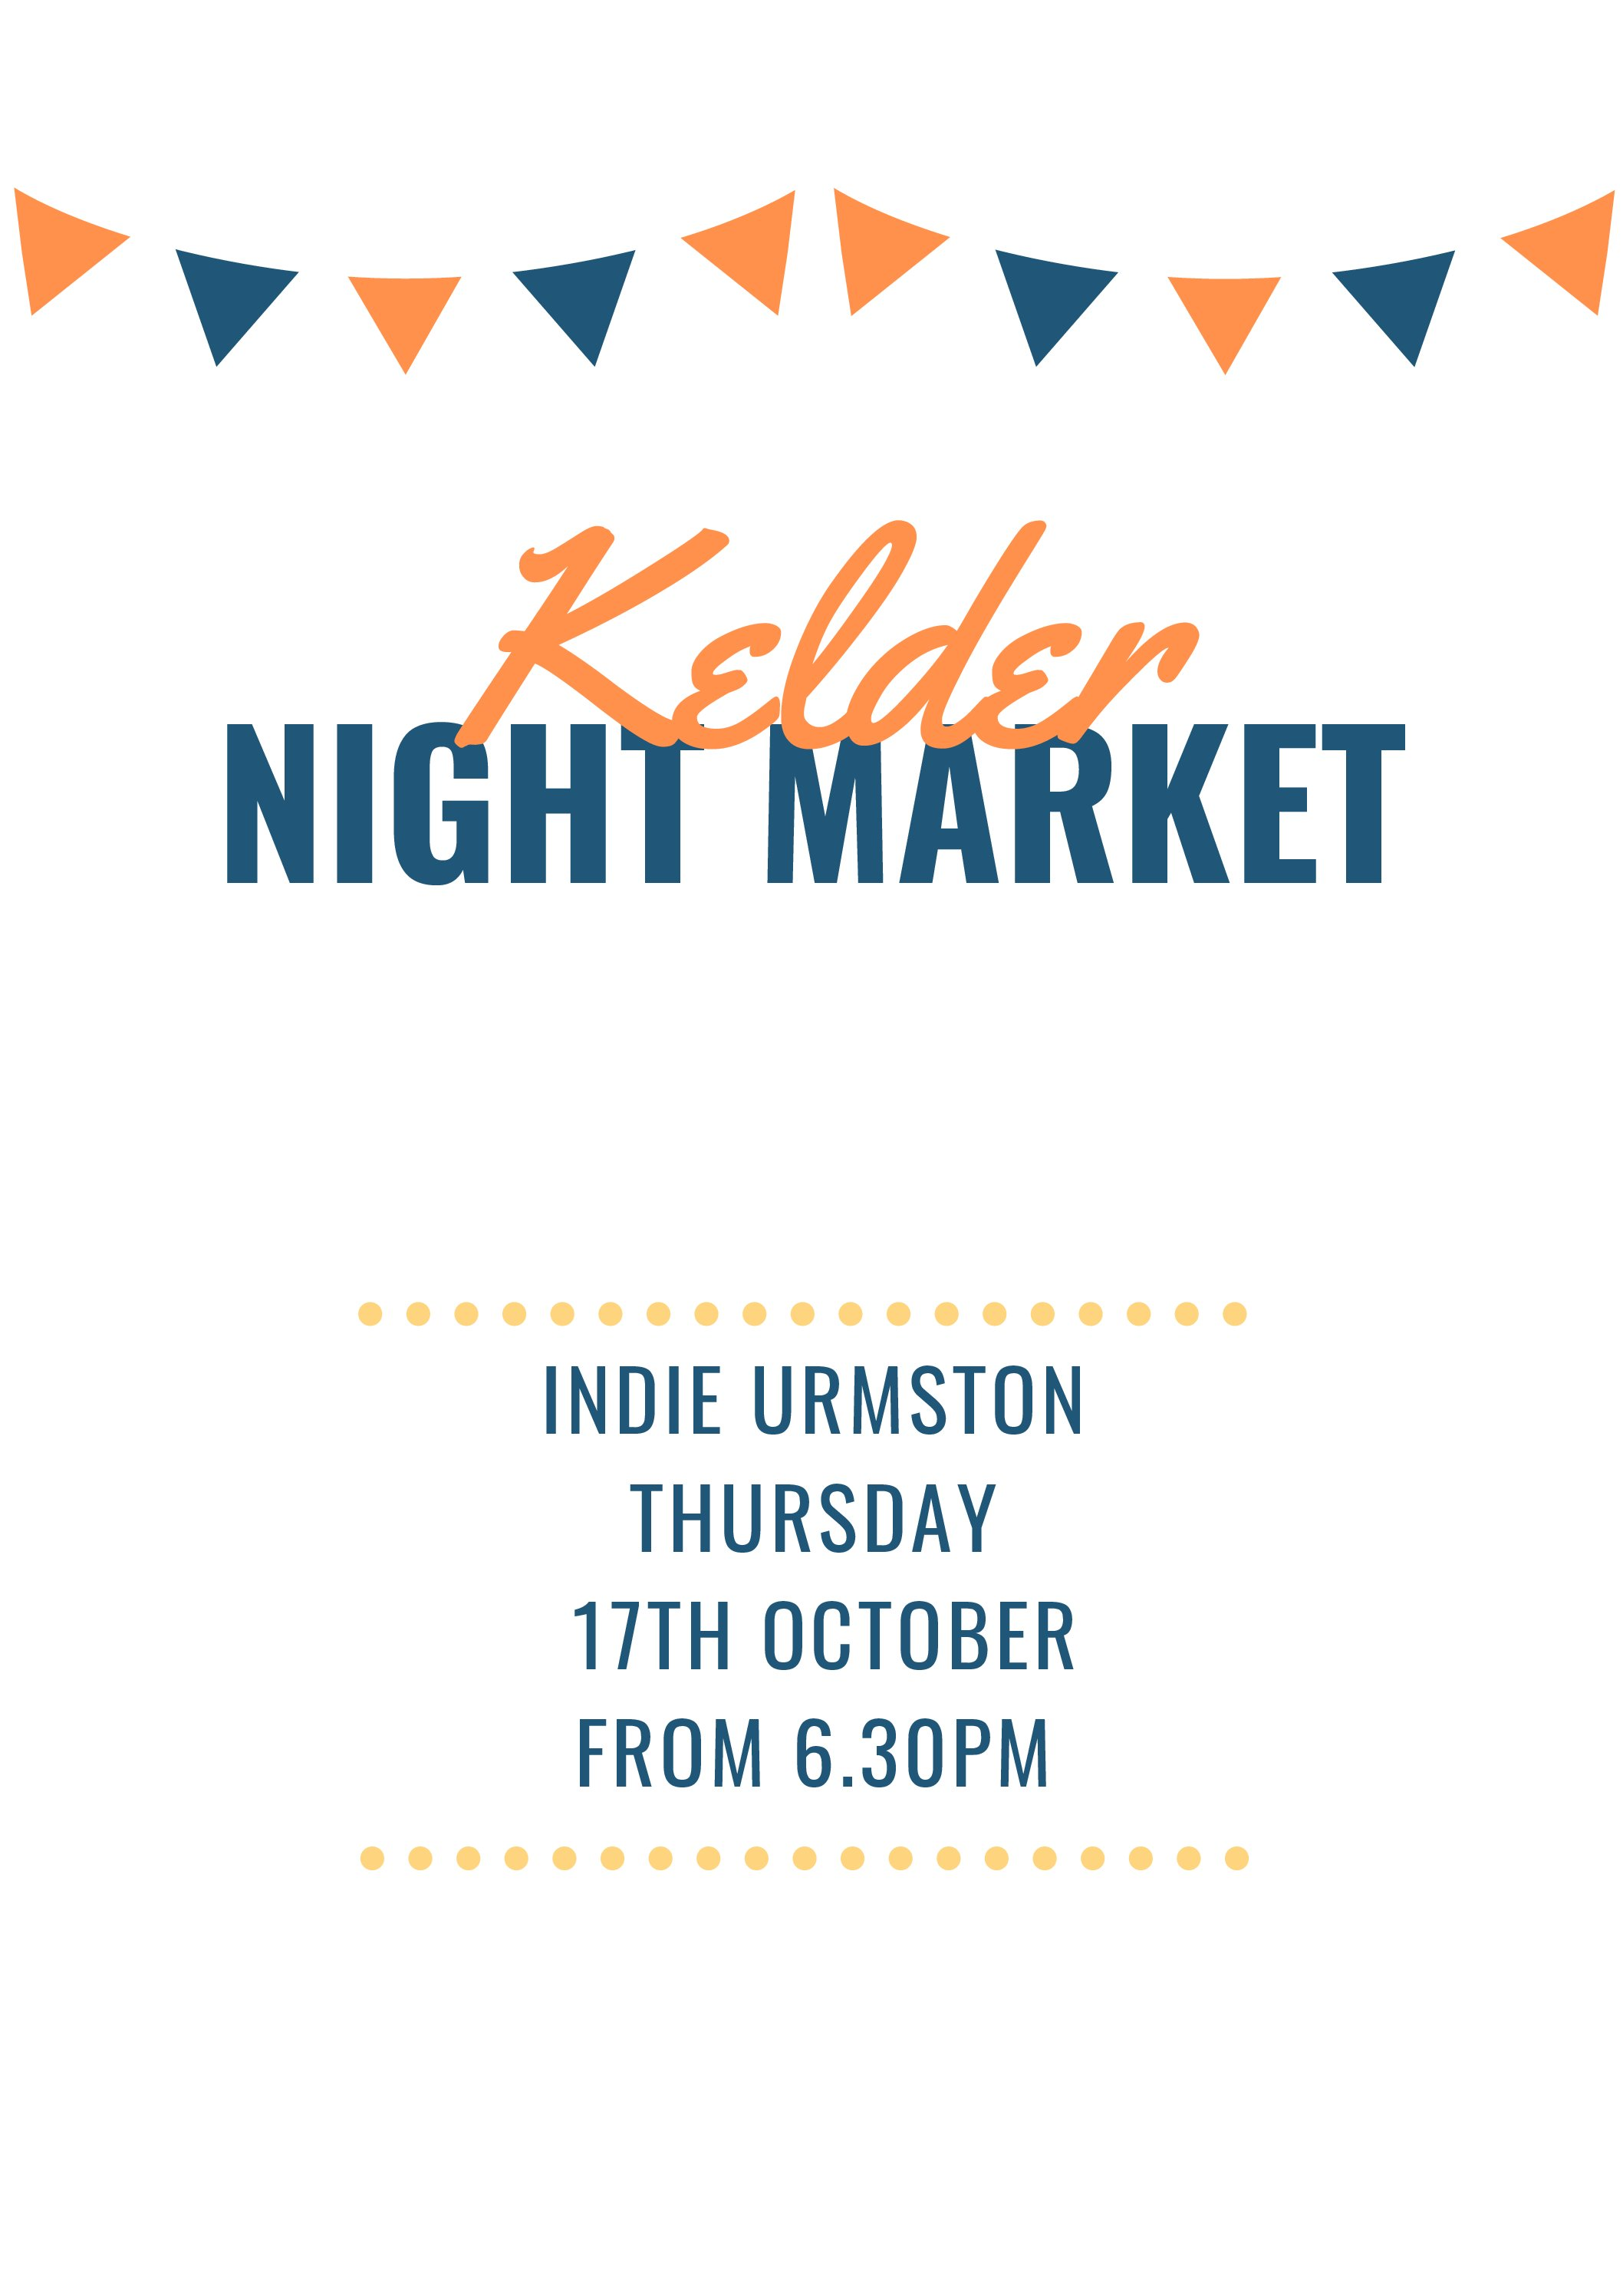 Indie Urmston – Kelder Night Market